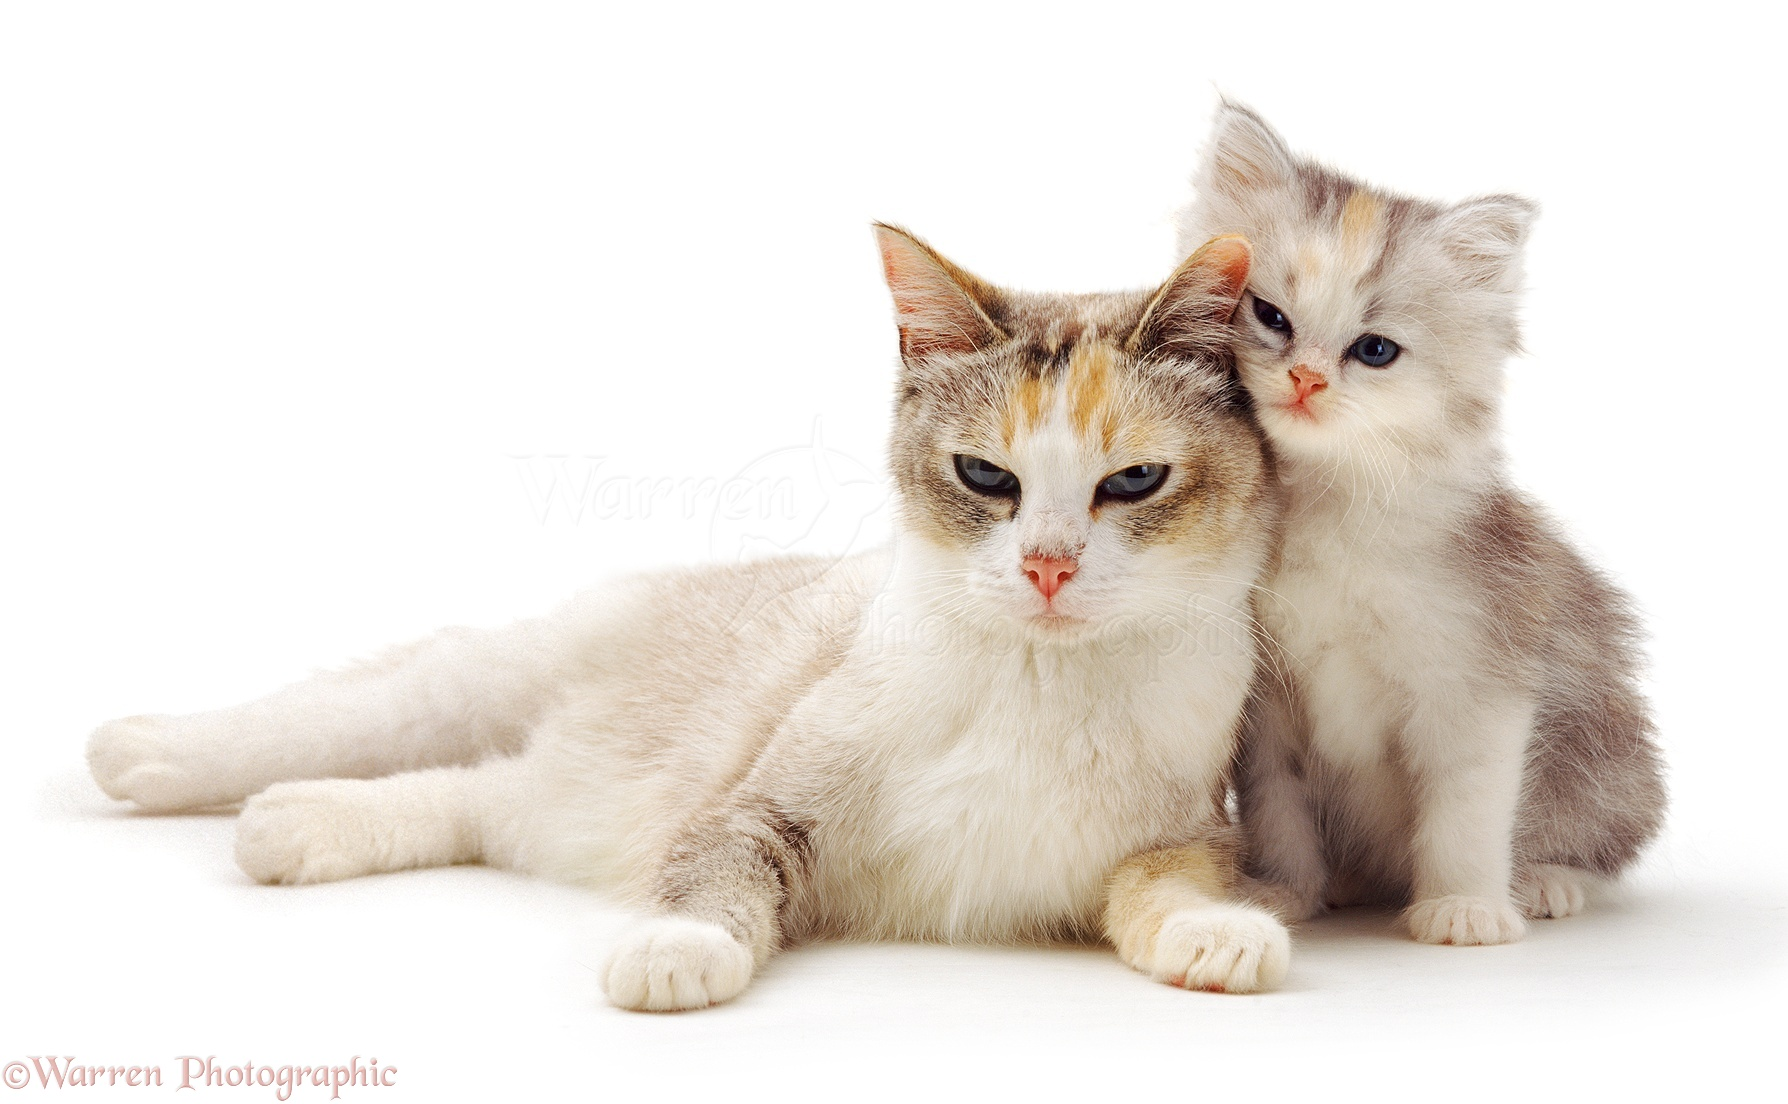 cute cat and kitten photo wp14195